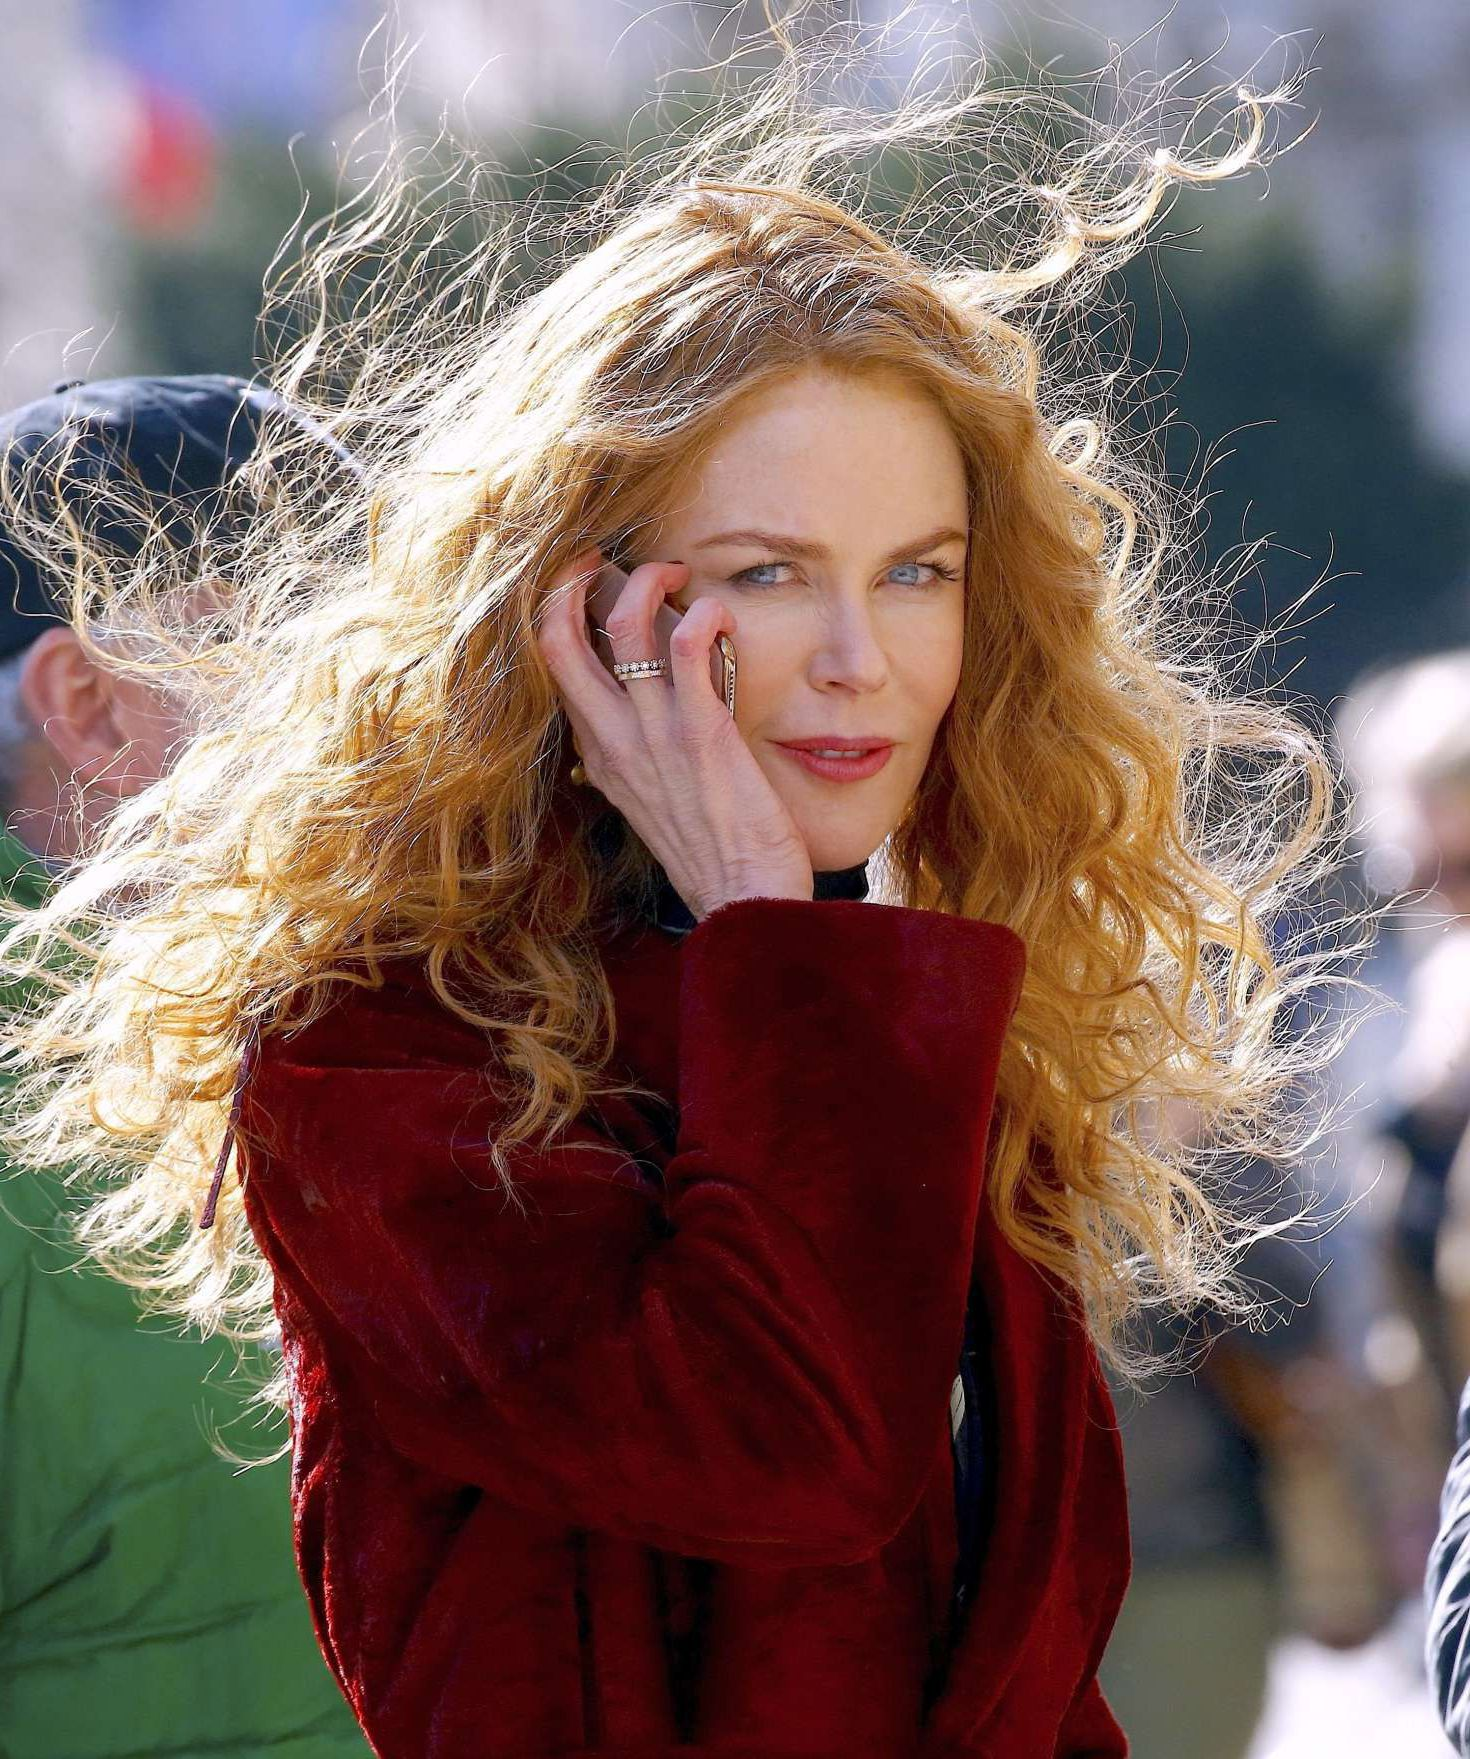 Nicole Kidman redhair actress